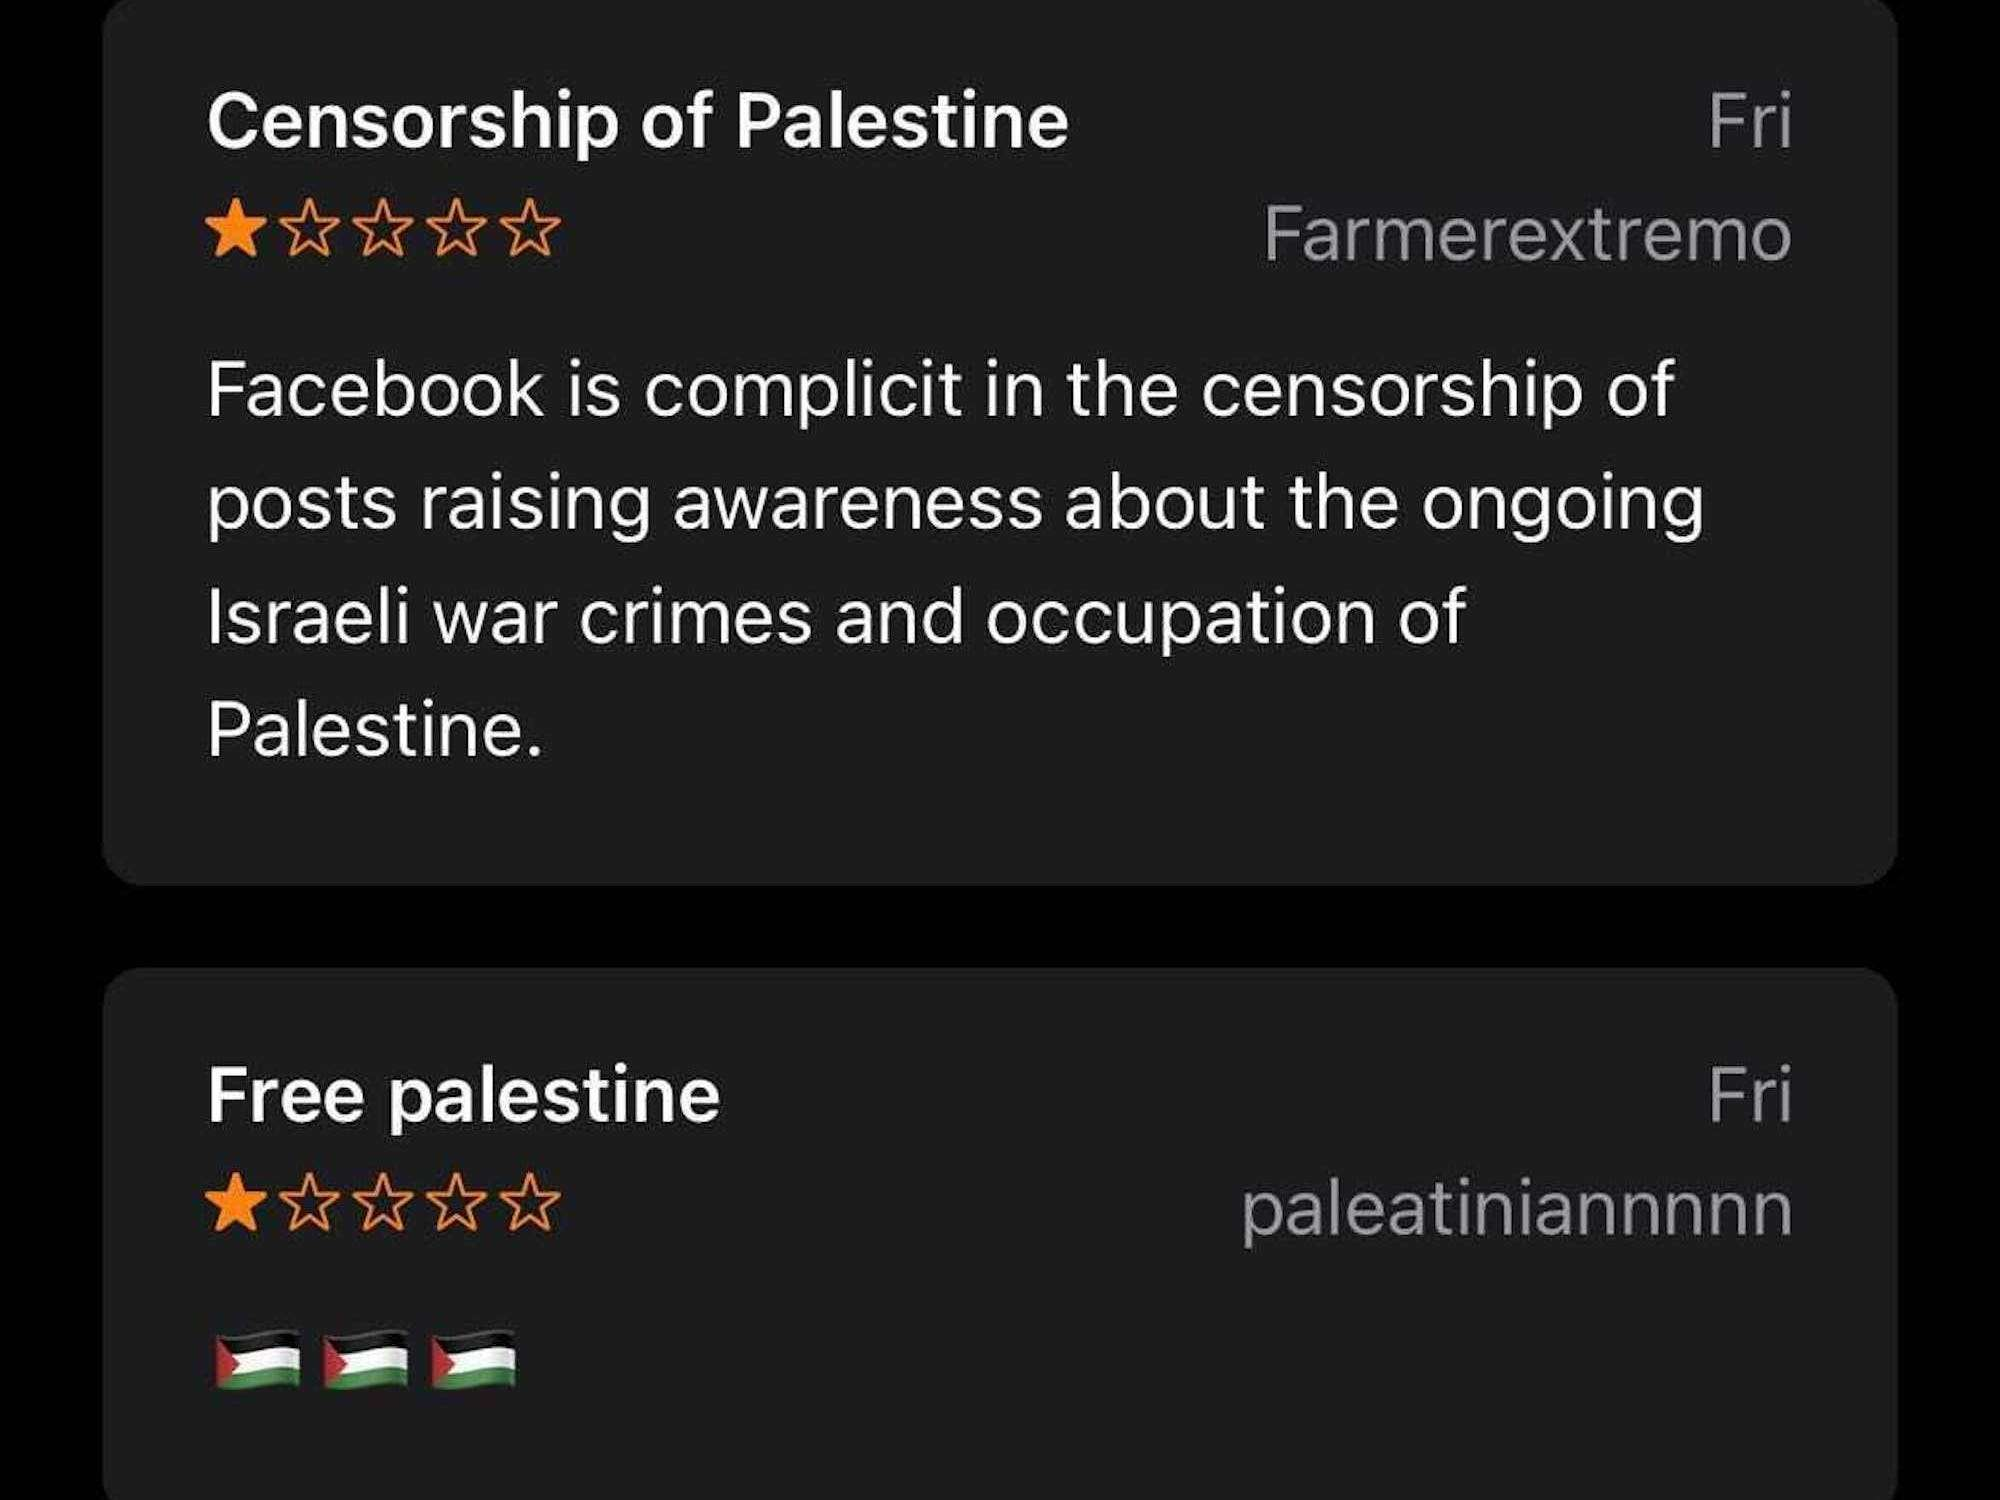 Apple refused to remove negative ratings for the Facebook app left by pro-Palestinian activists upset over censorship